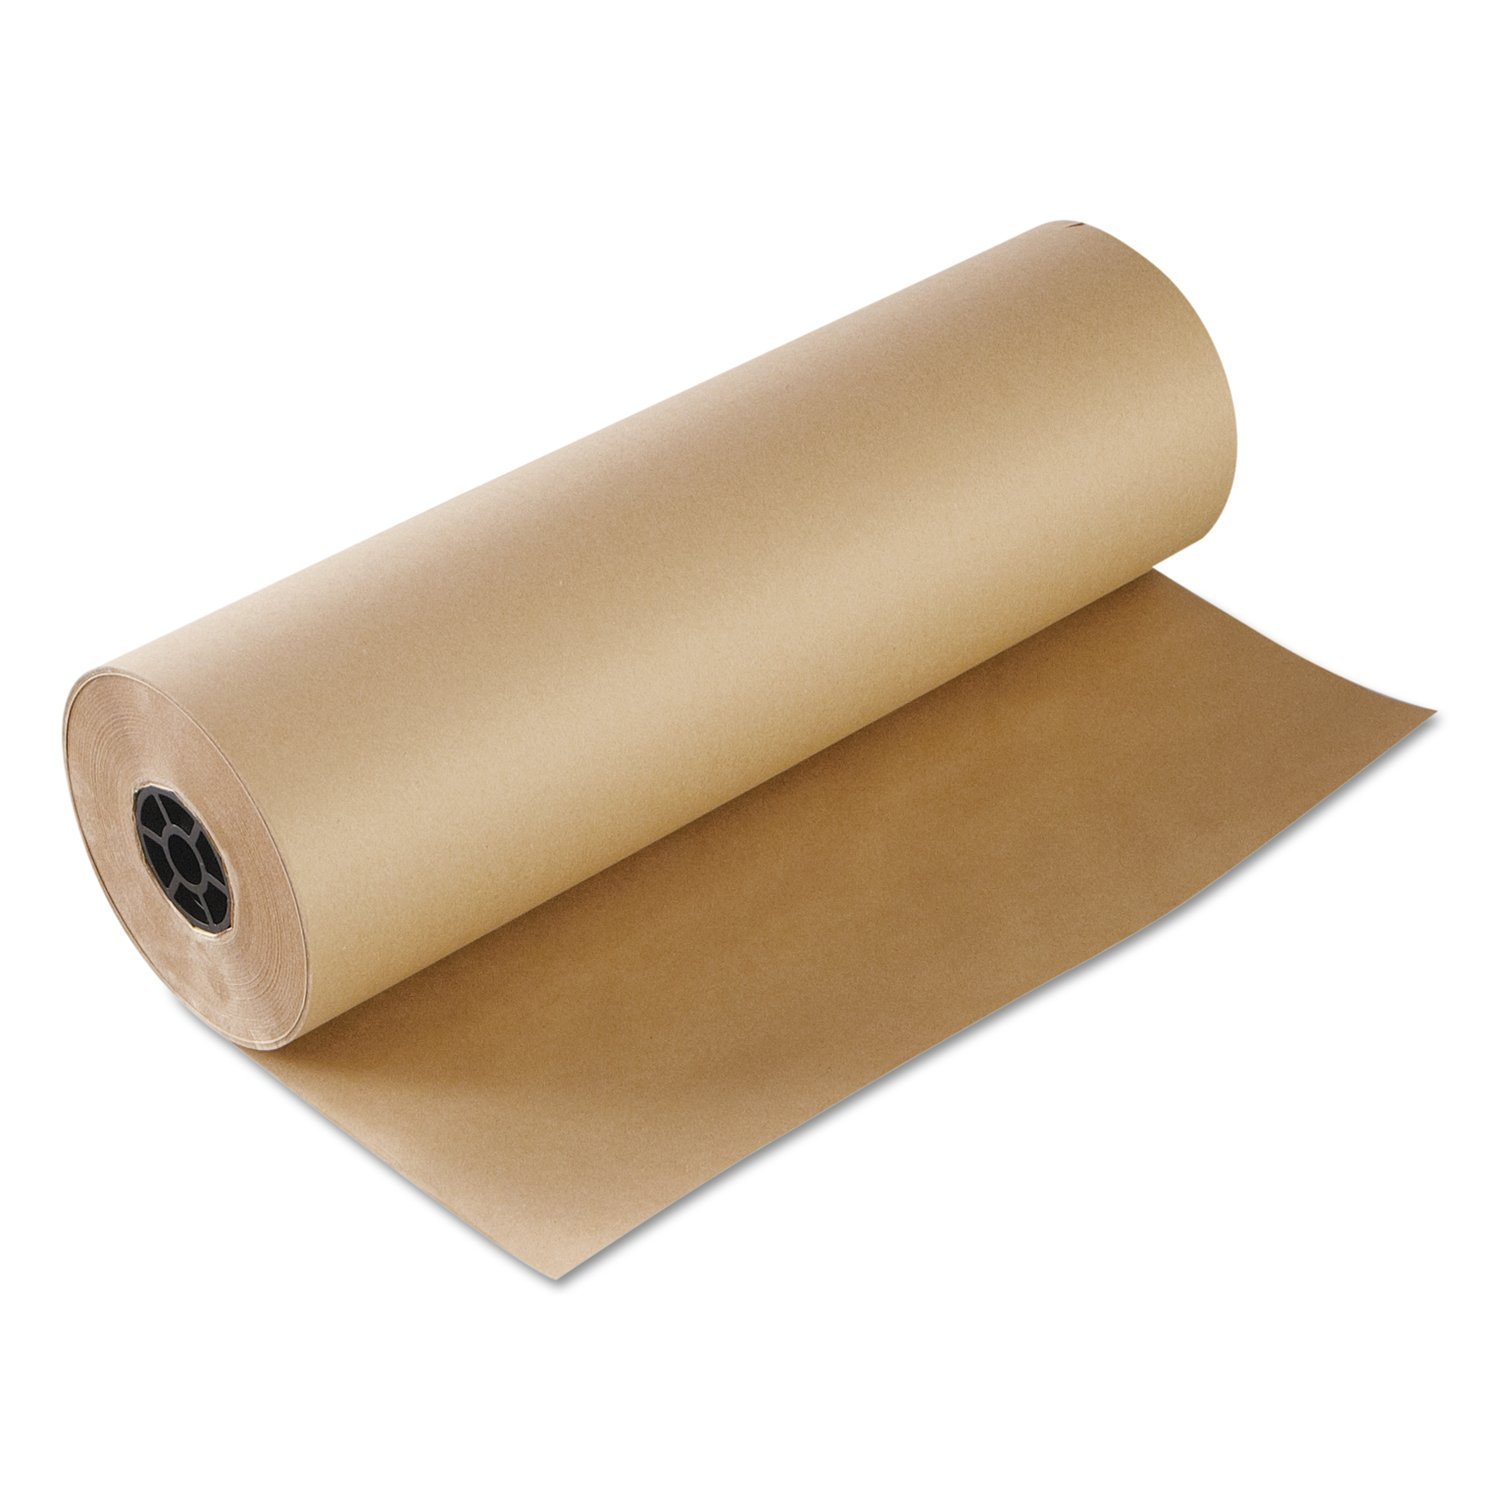 SafePro C0140150, 15-Inch Kraft Butcher Food Paper Roll, Wrapping Disposable Food Steak Meat Paper, 1000-Feet Roll